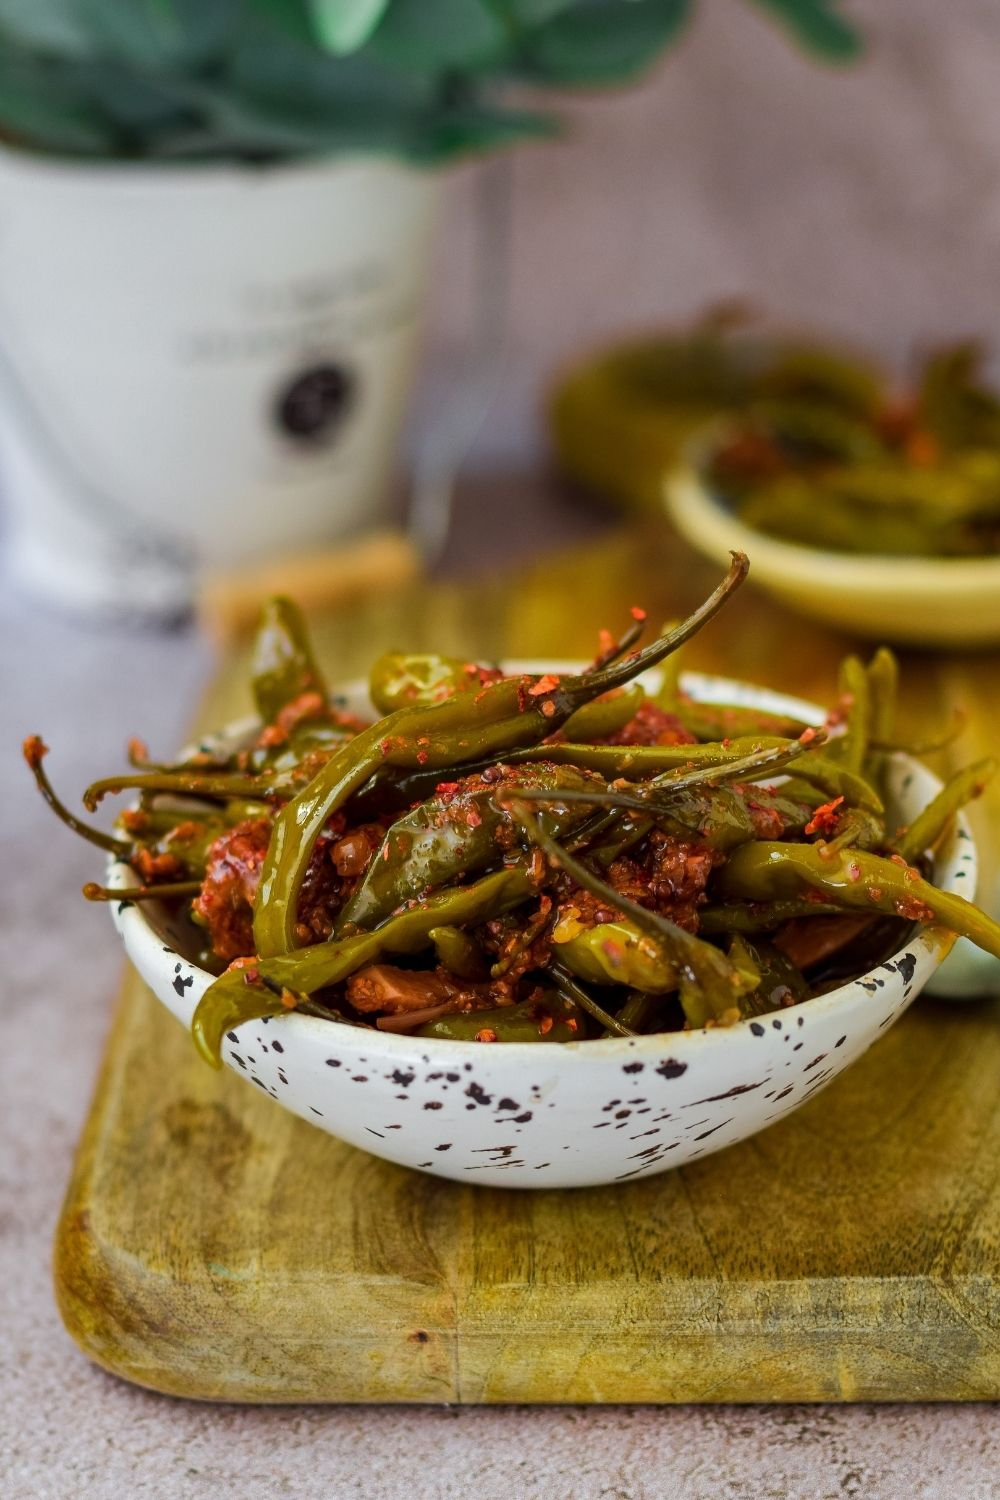 Pickled chillies in a white speckled bowl on a wooden board